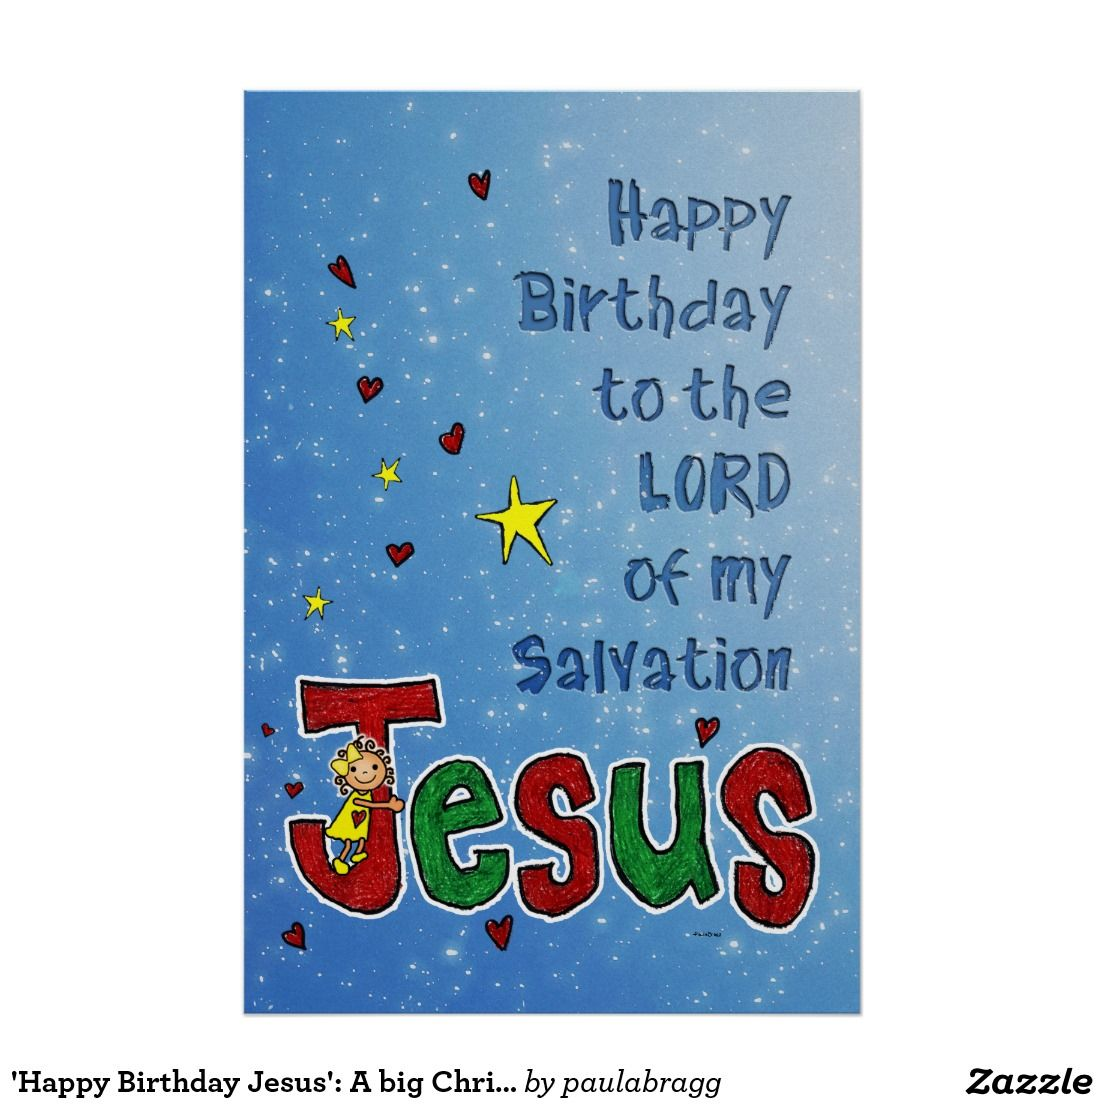 Happy Birthday Jesus A Big Christmas Hug Poster Zazzle Com Happy Birthday Jesus Holiday Design Card Birthday Hug